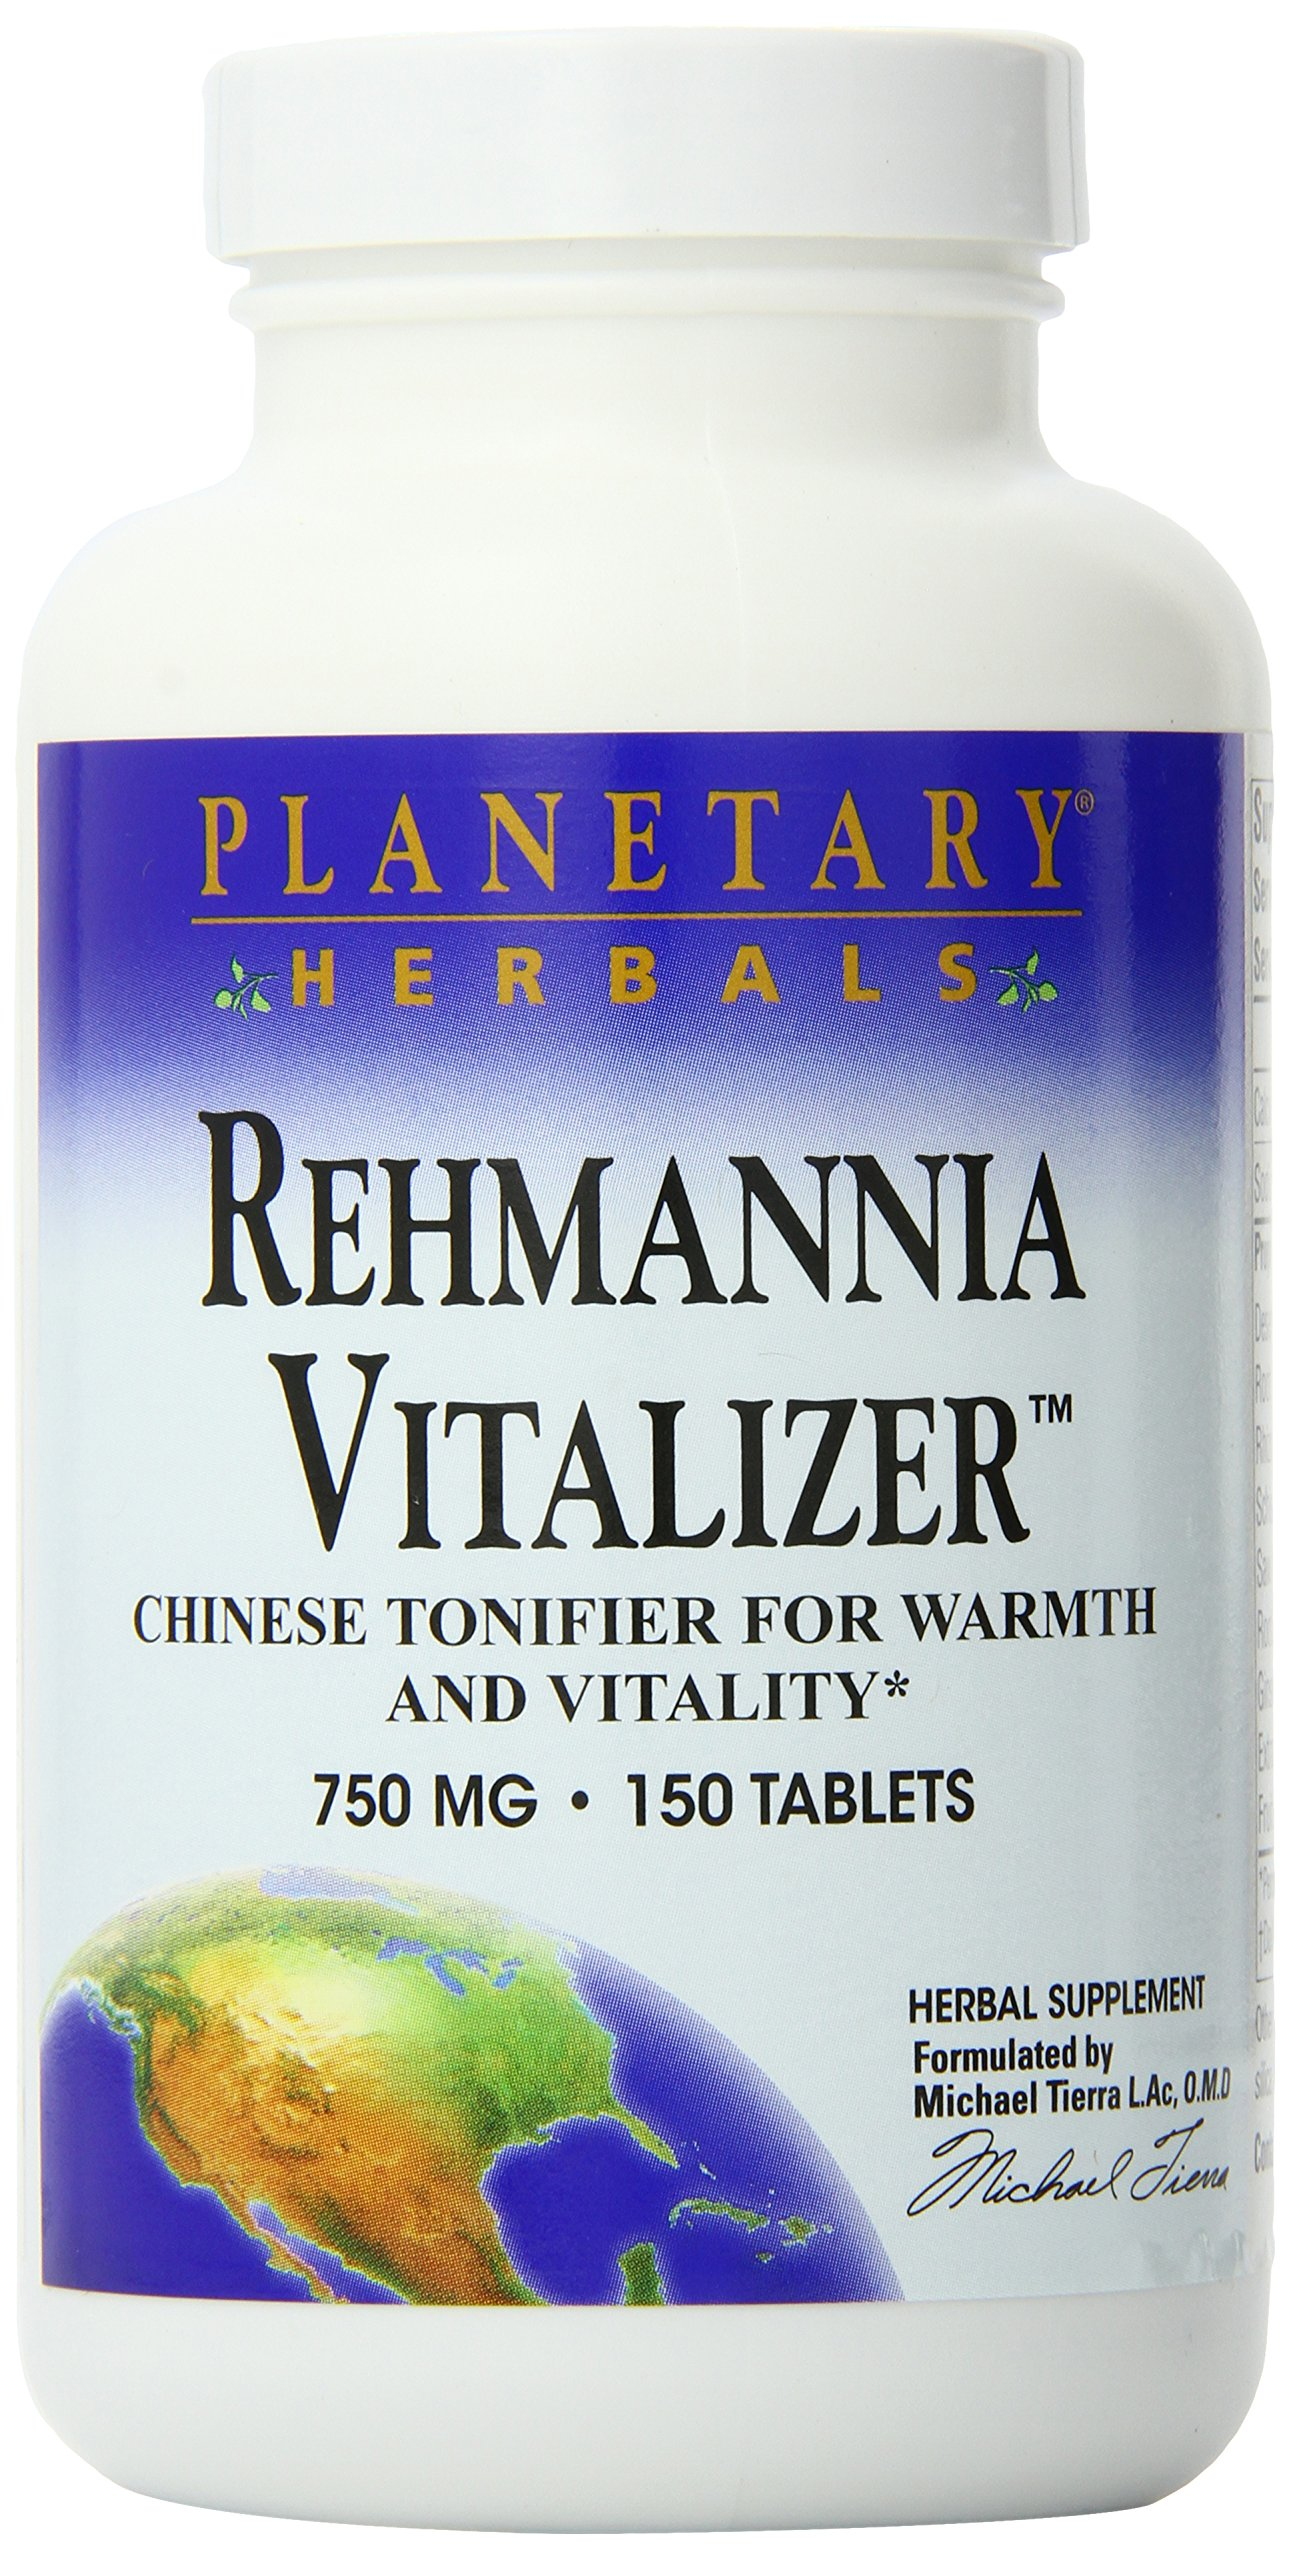 Planetary Herbals Rehmannia Vitalizer 750mg, Chinese Tonifier for Warmth and Vitality, 150 Tablets (Pack of 2)